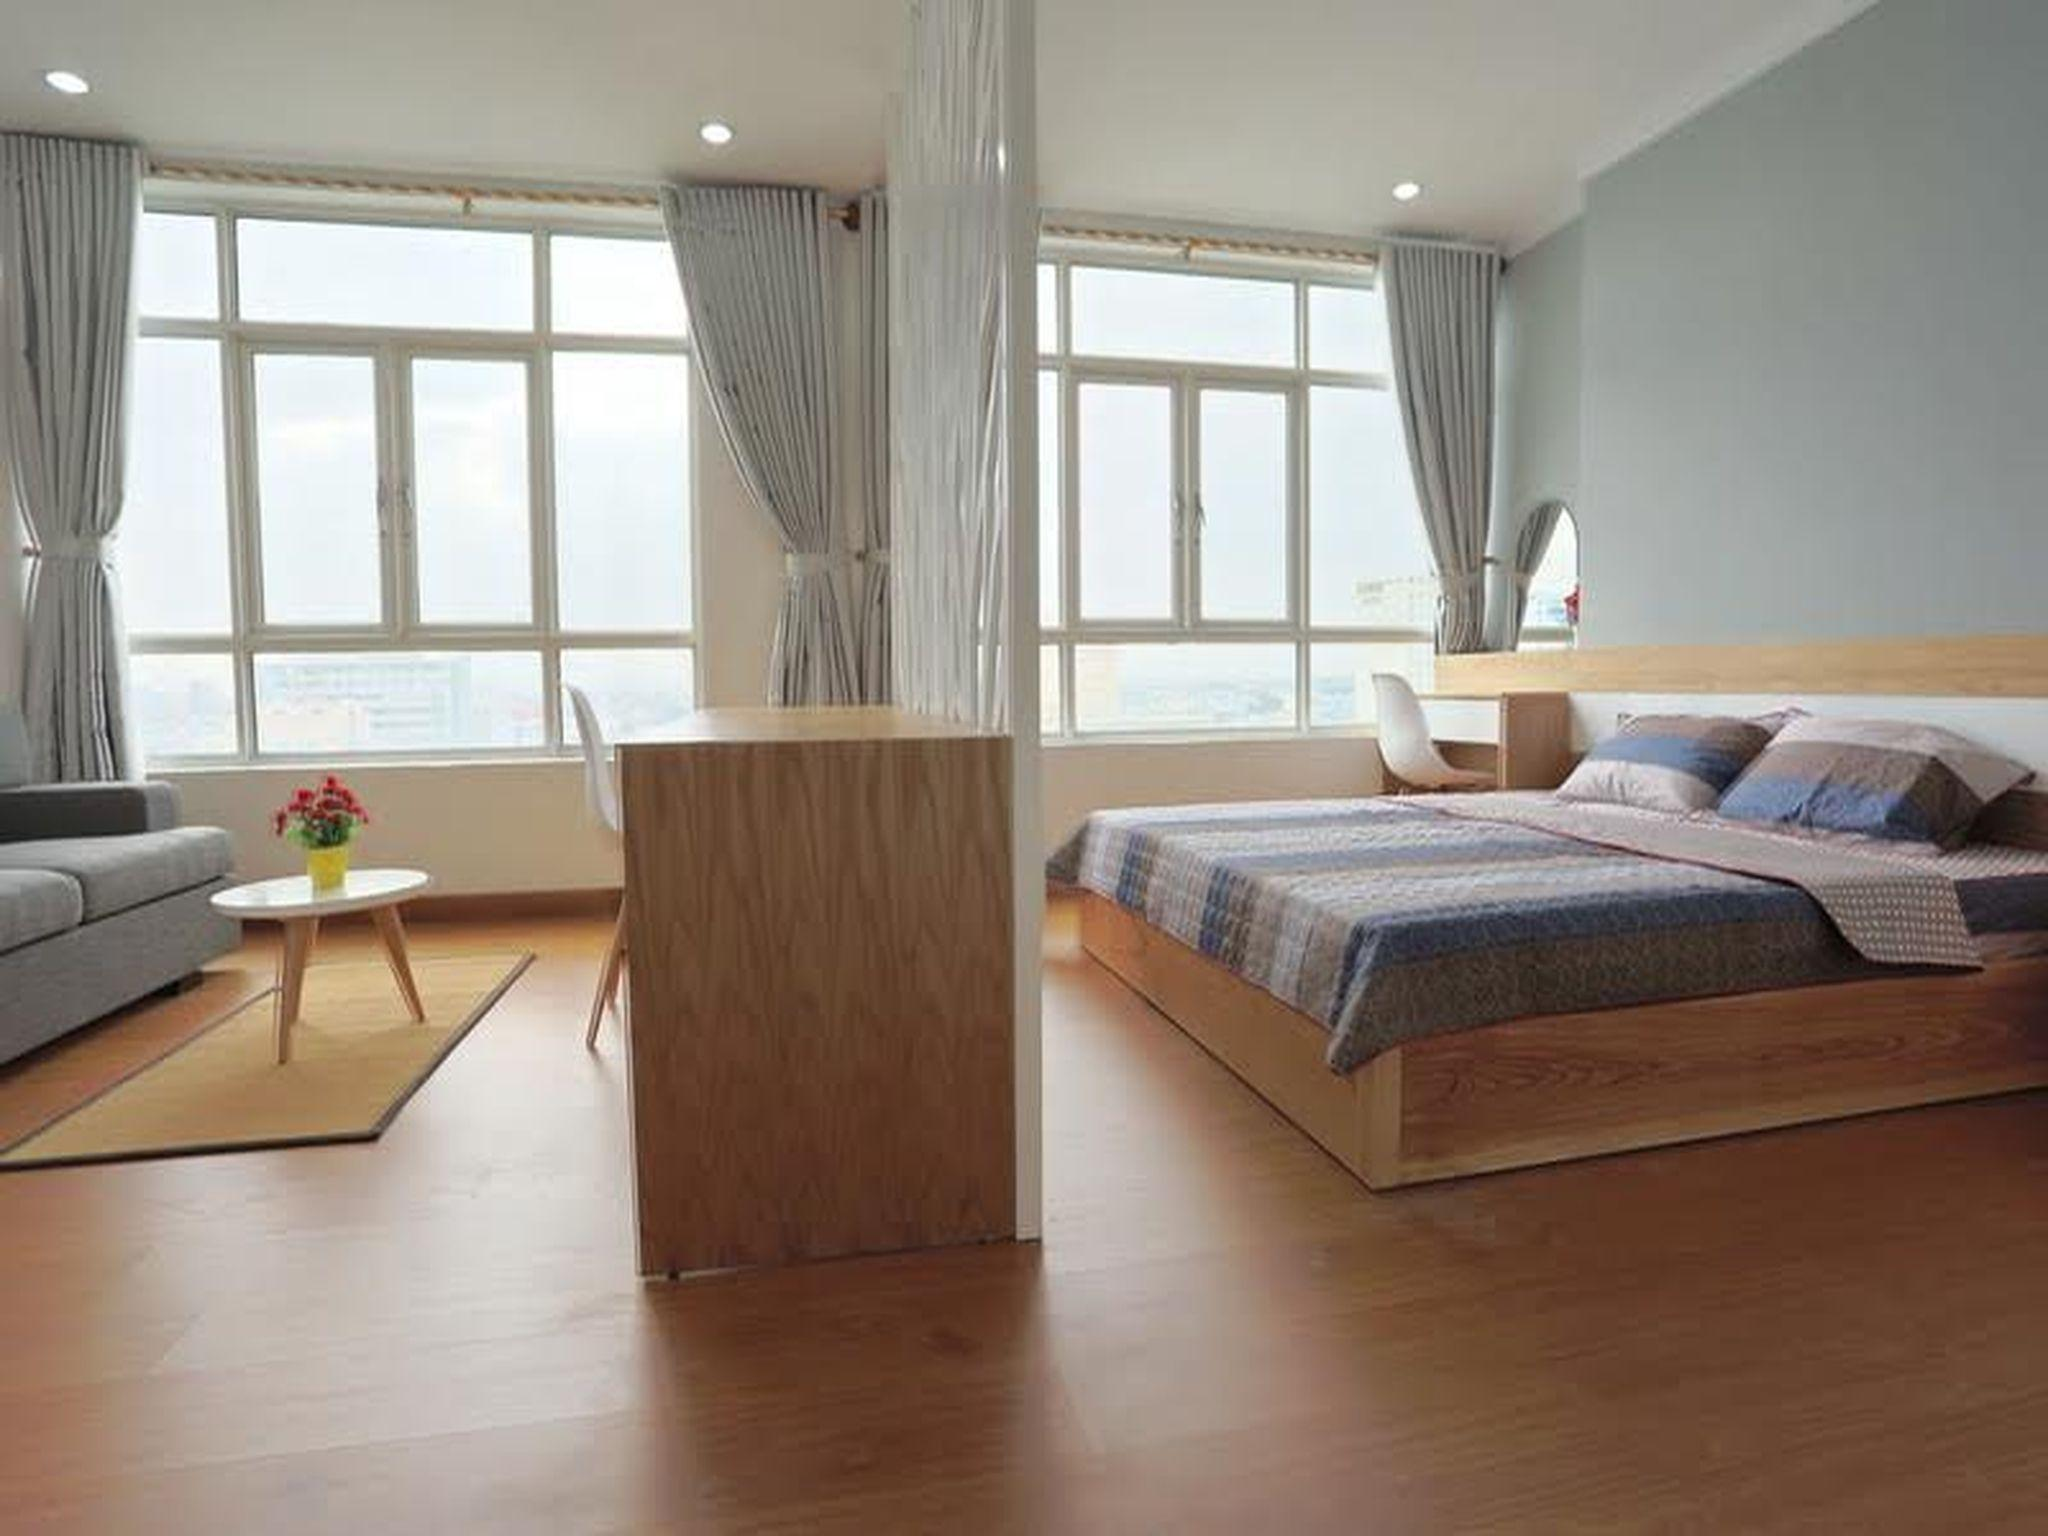 2 Bedrooms  Hoang Anh Gia Lai Apartment 5